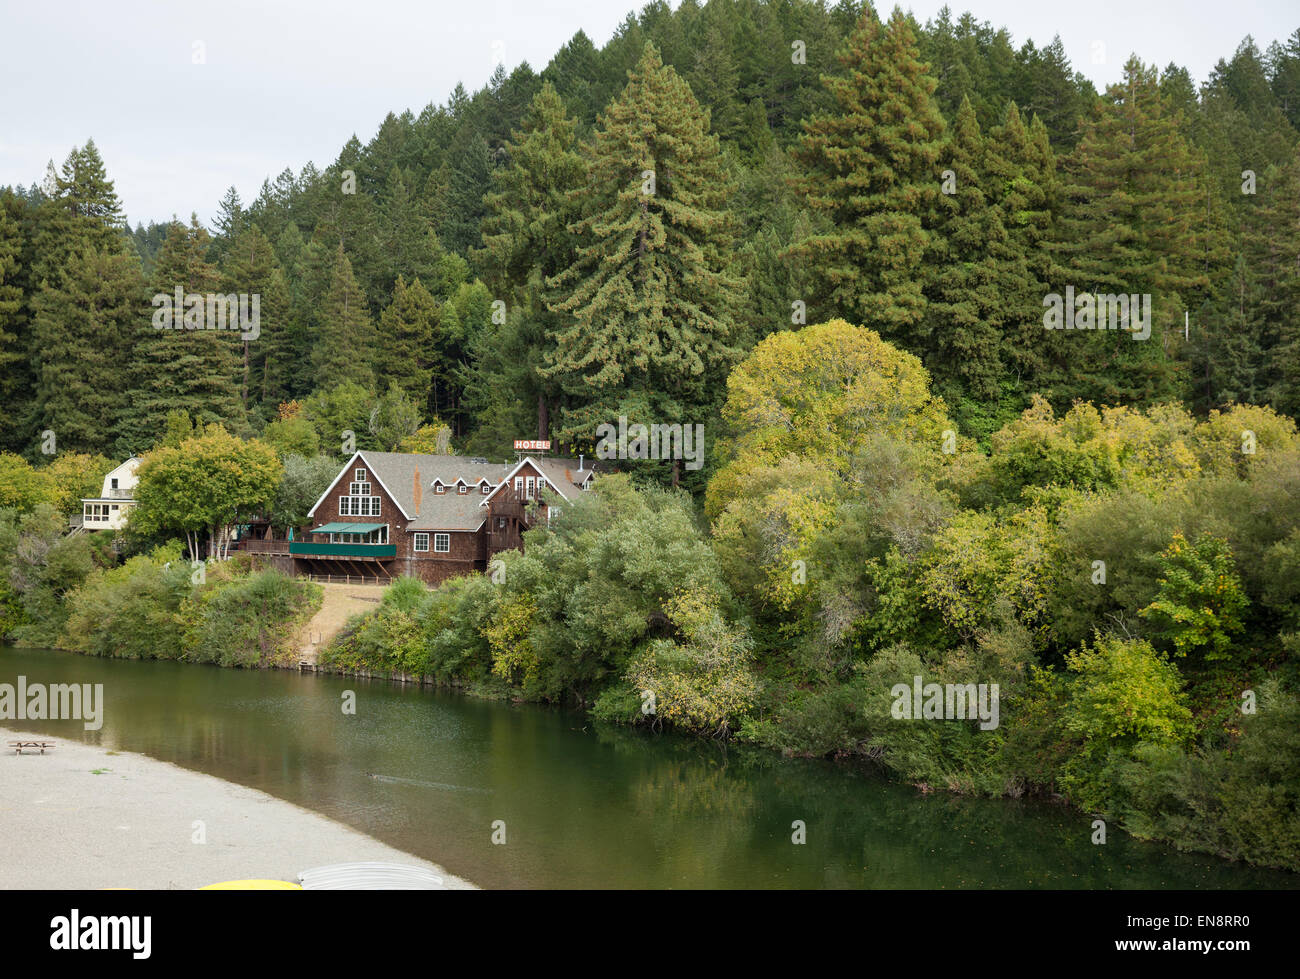 The Highland Dell Lodge on the Russian River in Monte Rio California. Stock Photo